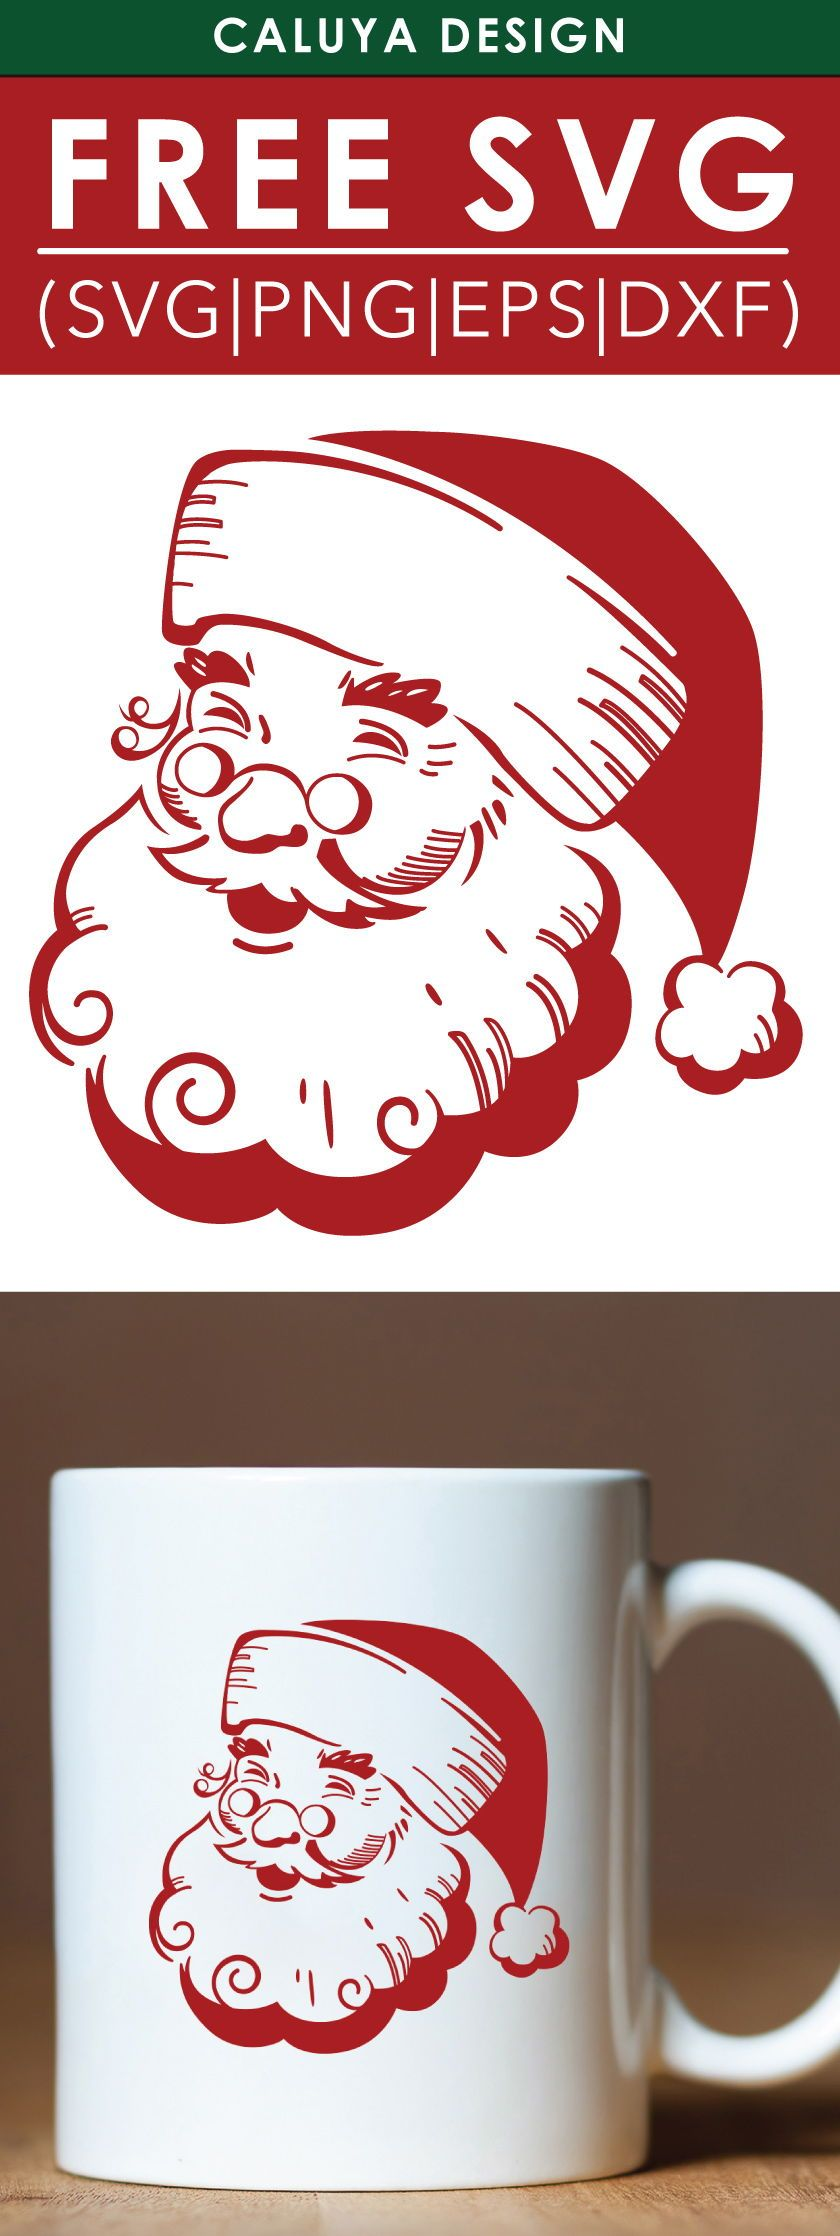 Free Vintage Santa Svg Png Eps Dxf By Caluya Design Christmas Svg Files Christmas Svg Free Printable Clip Art